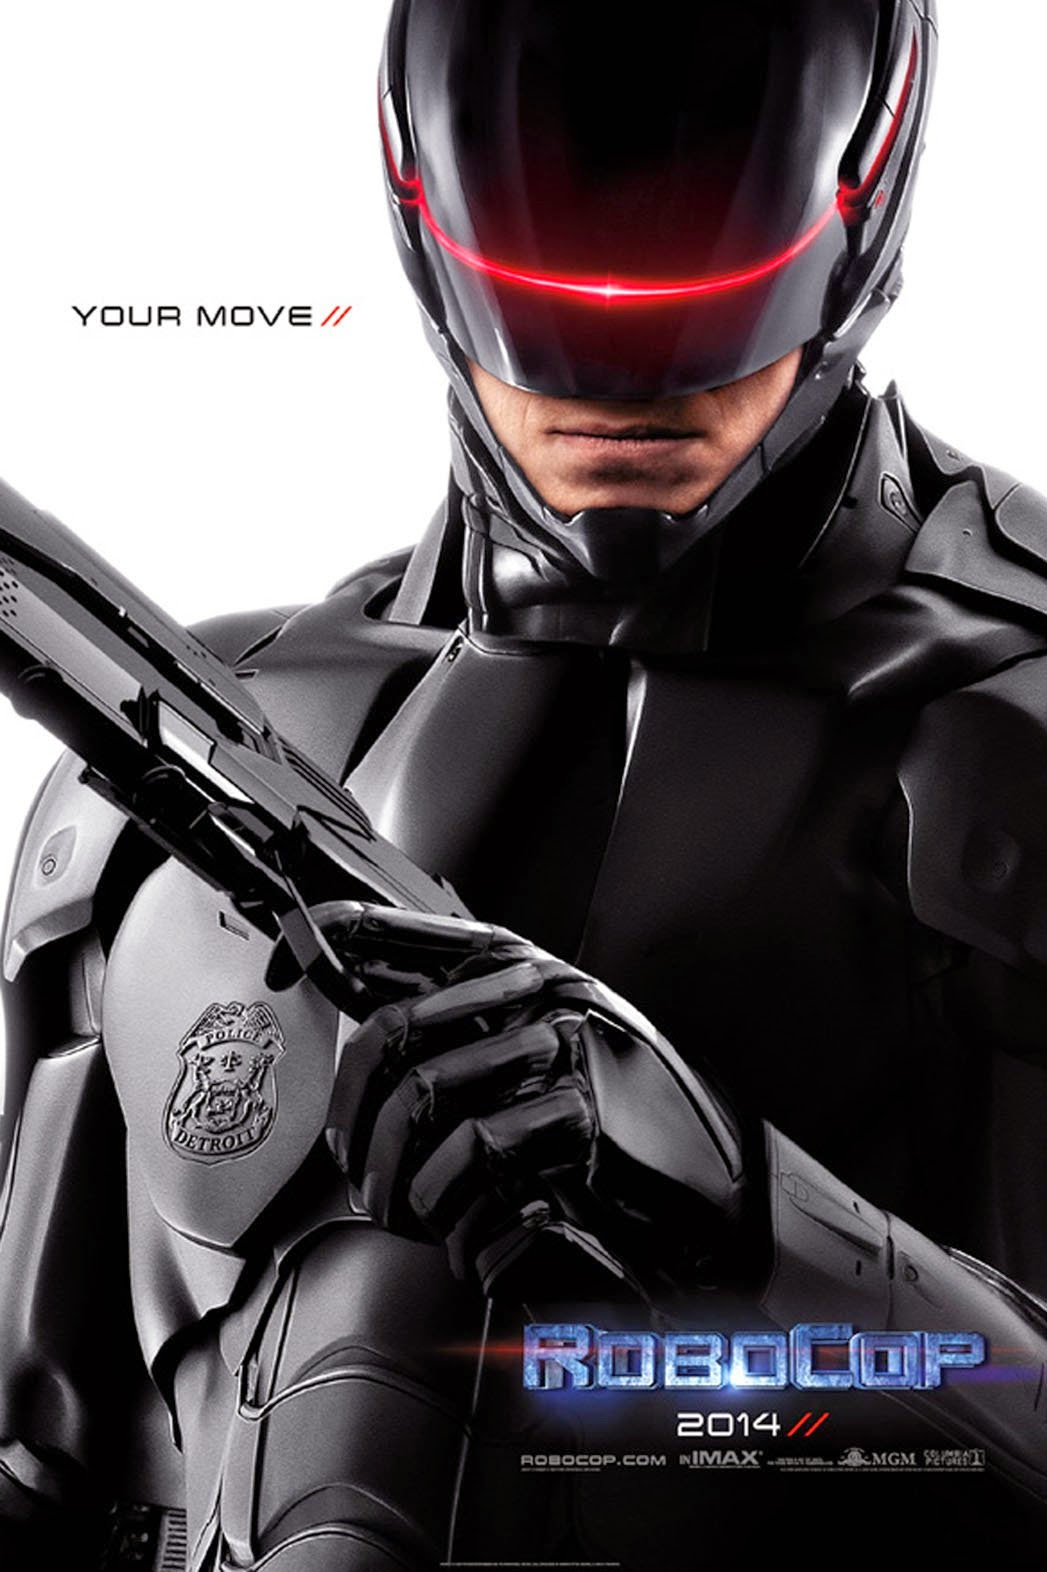 Regarder RoboCop en streaming